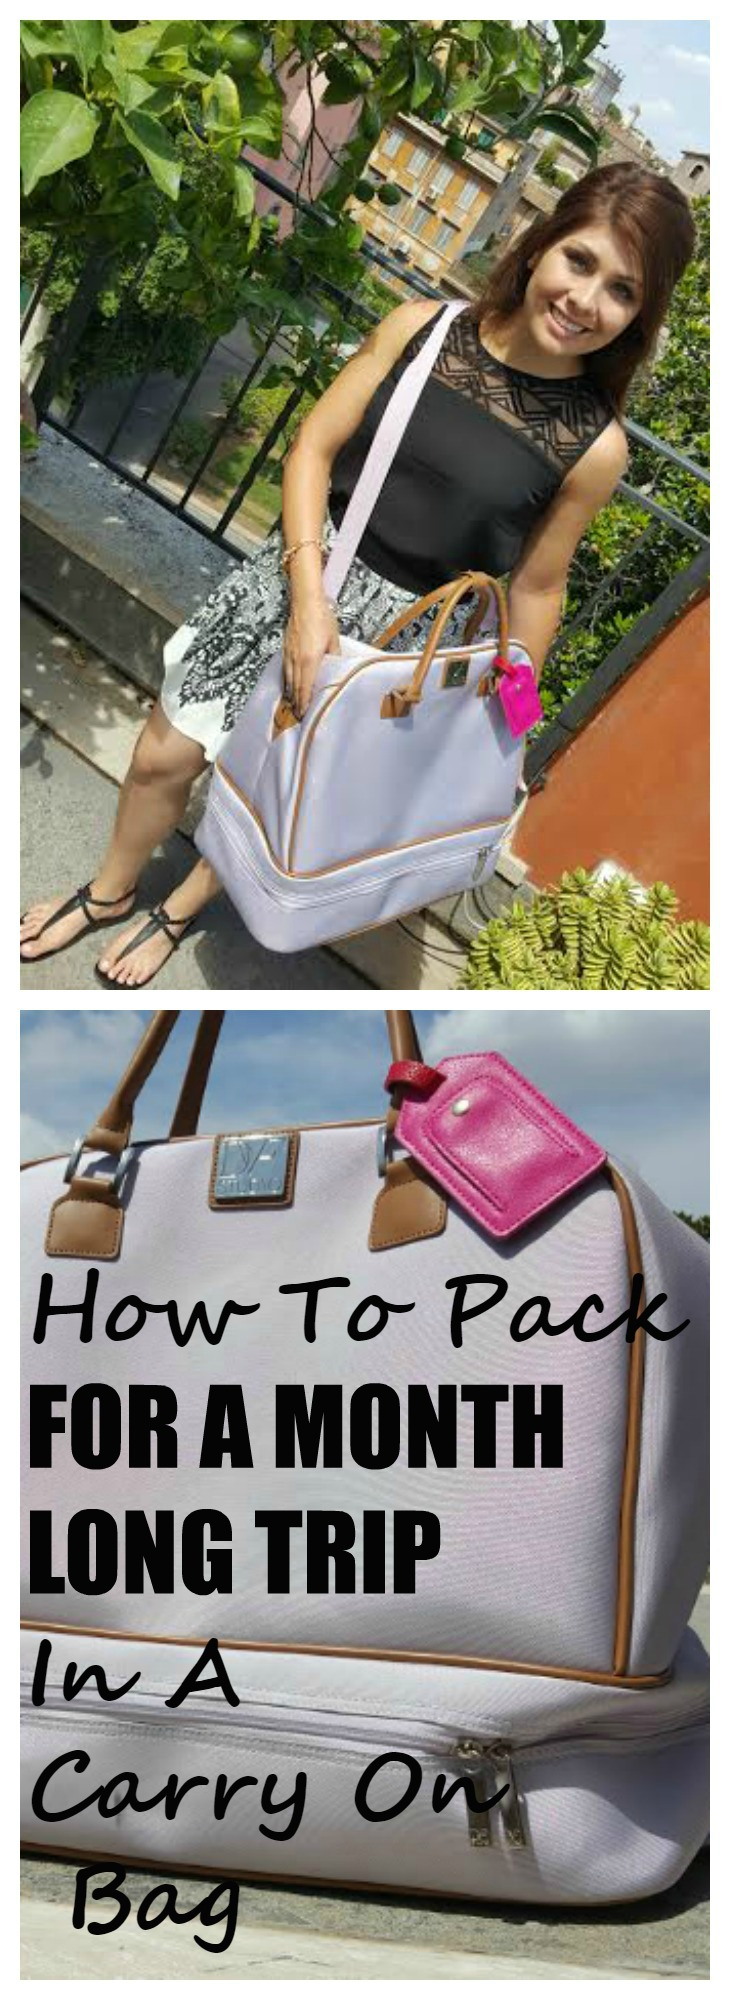 2how to pack for a month long trip in a carry on size bag packing hacks.jpg